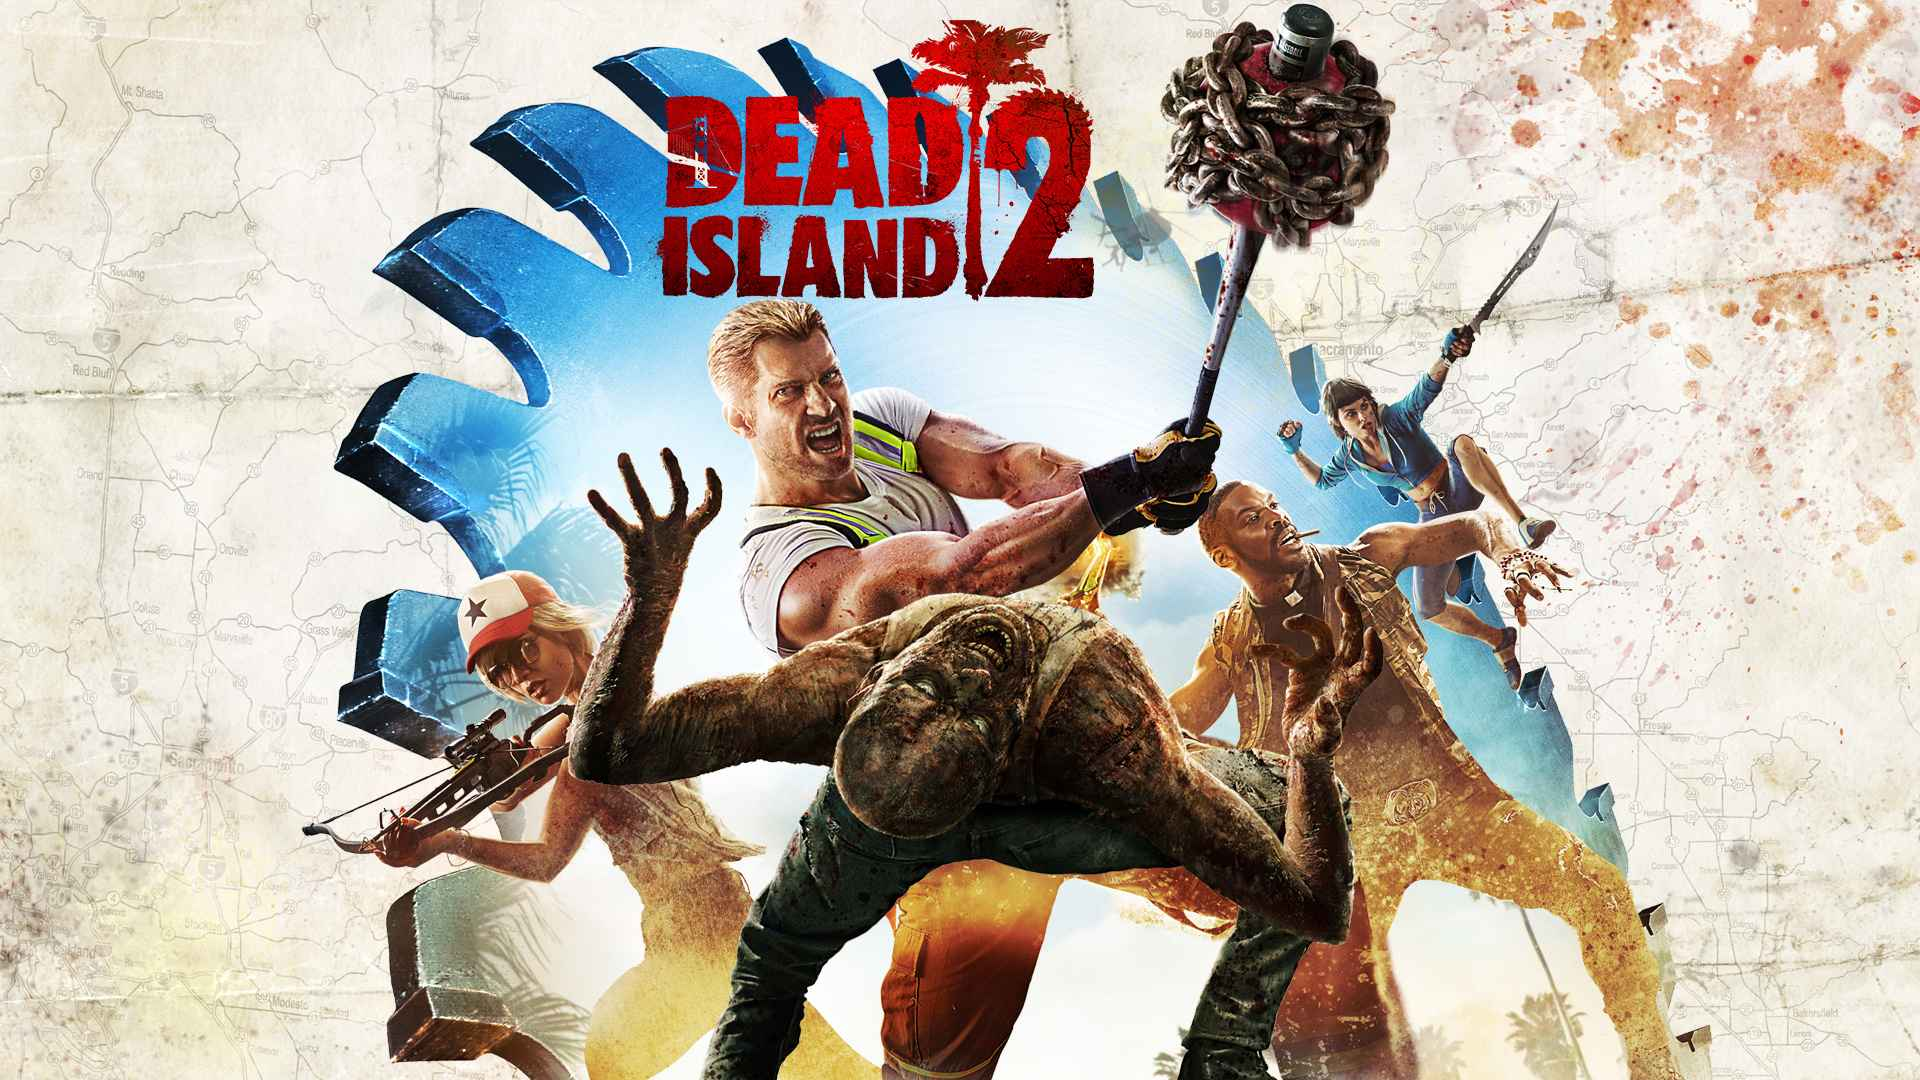 Dead Island 2 Release Date Could Be Revealed At E3 2019